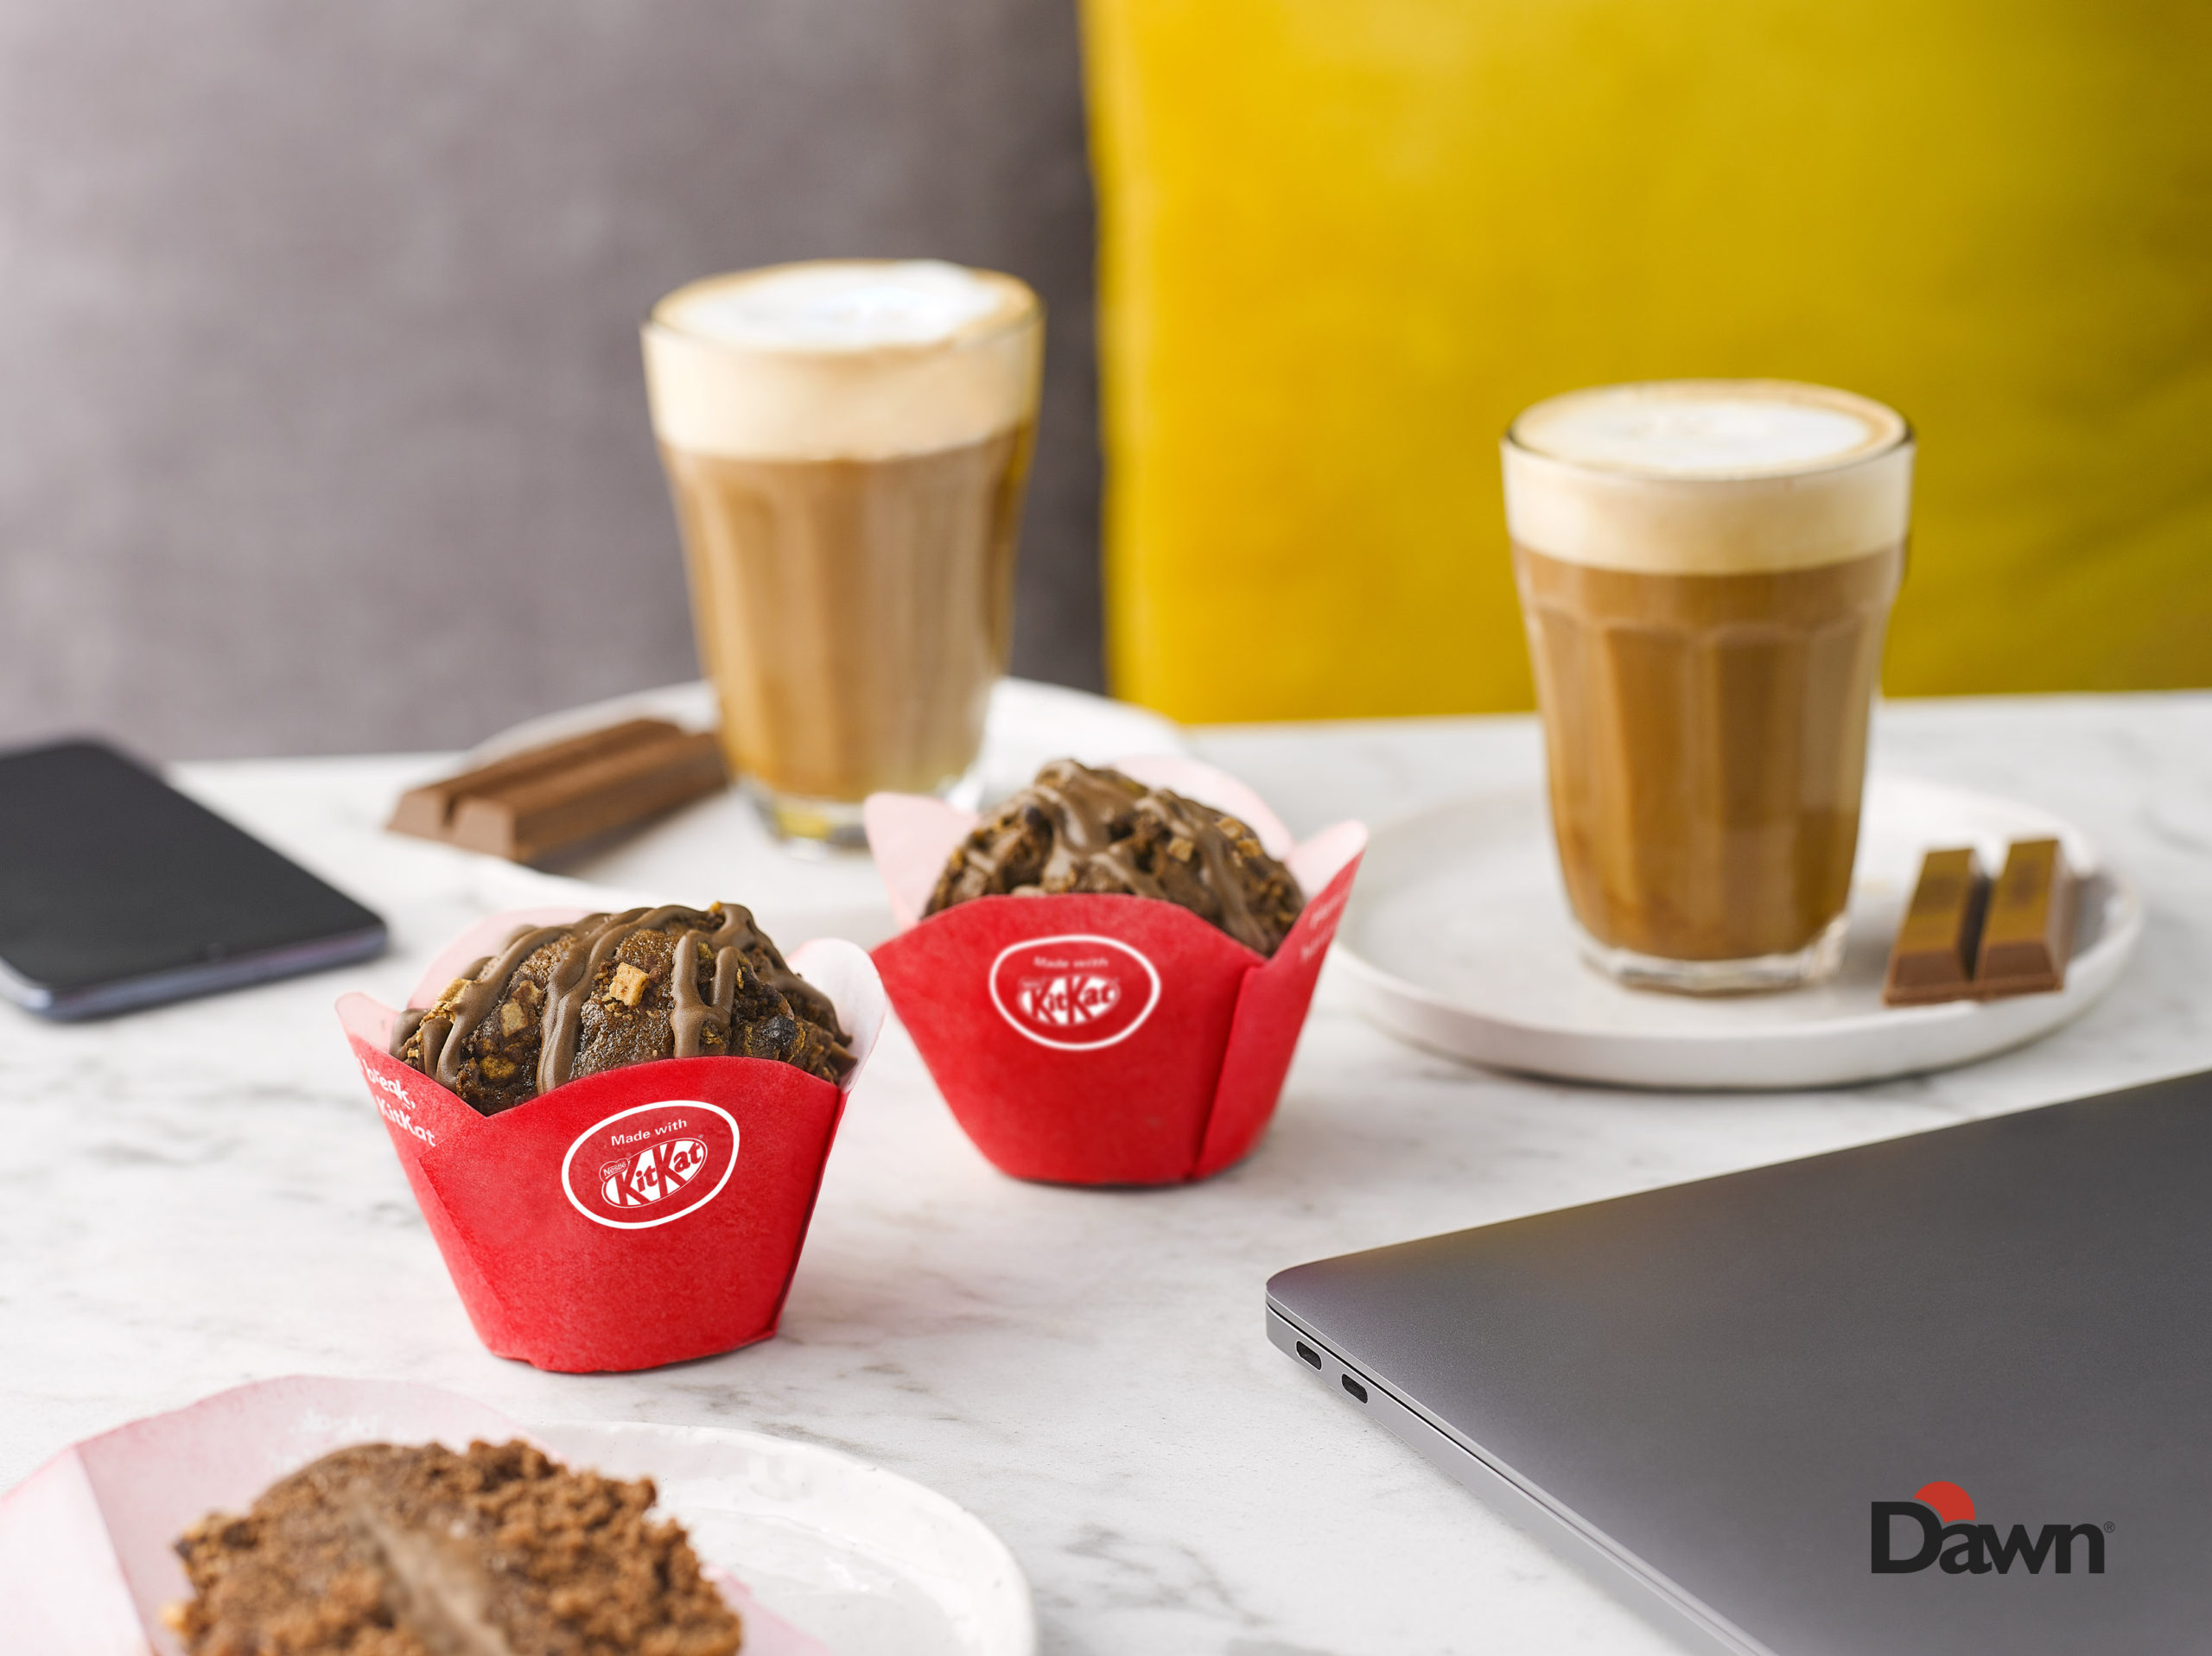 Nestlé and Dawn Foods sign EMENA region bakery deal including KitKat muffins